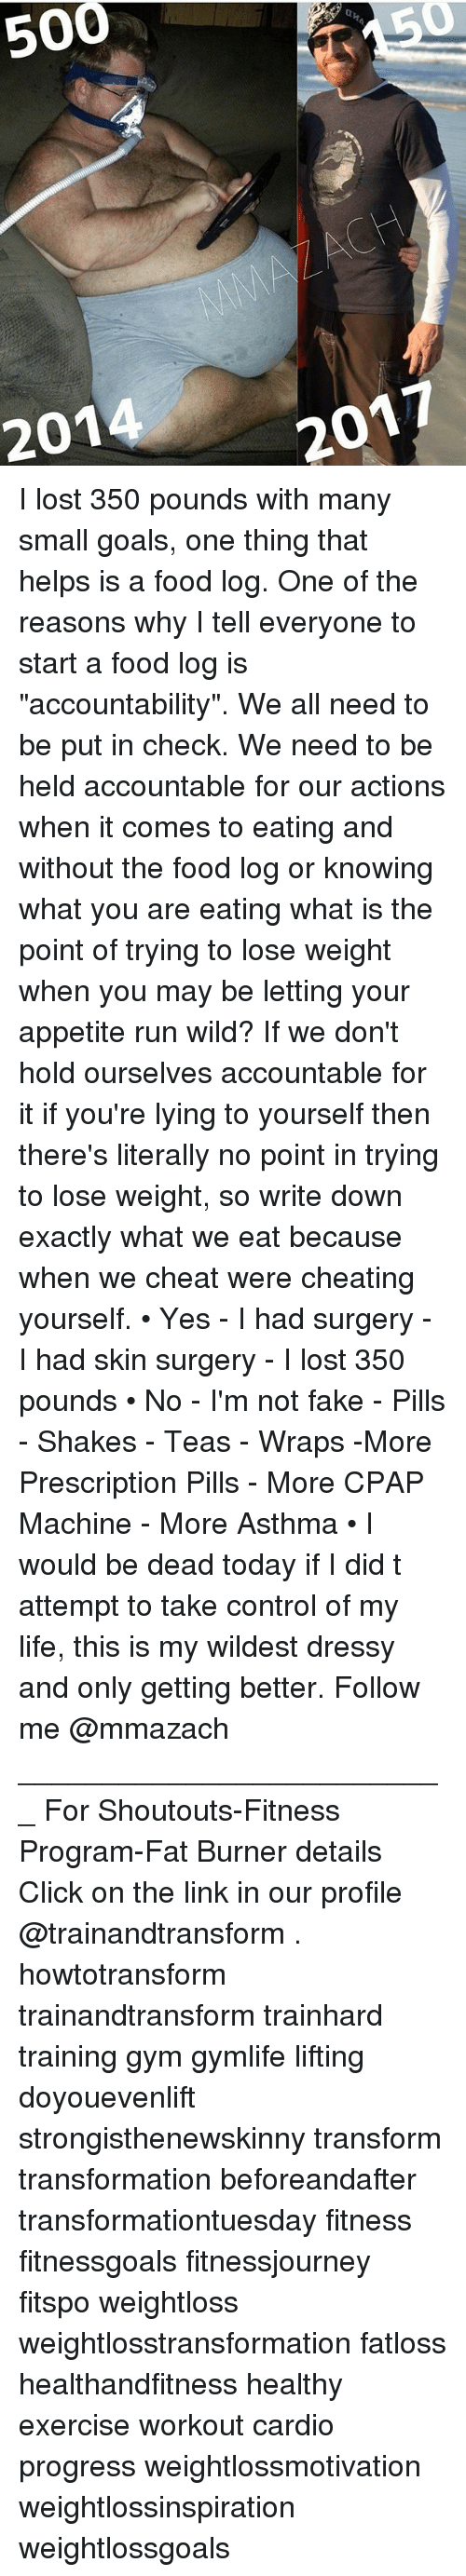 """Cheating, Click, and Fake: 500  201  2017 I lost 350 pounds with many small goals, one thing that helps is a food log. One of the reasons why I tell everyone to start a food log is """"accountability"""". We all need to be put in check. We need to be held accountable for our actions when it comes to eating and without the food log or knowing what you are eating what is the point of trying to lose weight when you may be letting your appetite run wild? If we don't hold ourselves accountable for it if you're lying to yourself then there's literally no point in trying to lose weight, so write down exactly what we eat because when we cheat were cheating yourself. • Yes - I had surgery - I had skin surgery - I lost 350 pounds • No - I'm not fake - Pills - Shakes - Teas - Wraps -More Prescription Pills - More CPAP Machine - More Asthma • I would be dead today if I did t attempt to take control of my life, this is my wildest dressy and only getting better. Follow me @mmazach __________________________ For Shoutouts-Fitness Program-Fat Burner details Click on the link in our profile @trainandtransform . howtotransform trainandtransform trainhard training gym gymlife lifting doyouevenlift strongisthenewskinny transform transformation beforeandafter transformationtuesday fitness fitnessgoals fitnessjourney fitspo weightloss weightlosstransformation fatloss healthandfitness healthy exercise workout cardio progress weightlossmotivation weightlossinspiration weightlossgoals"""